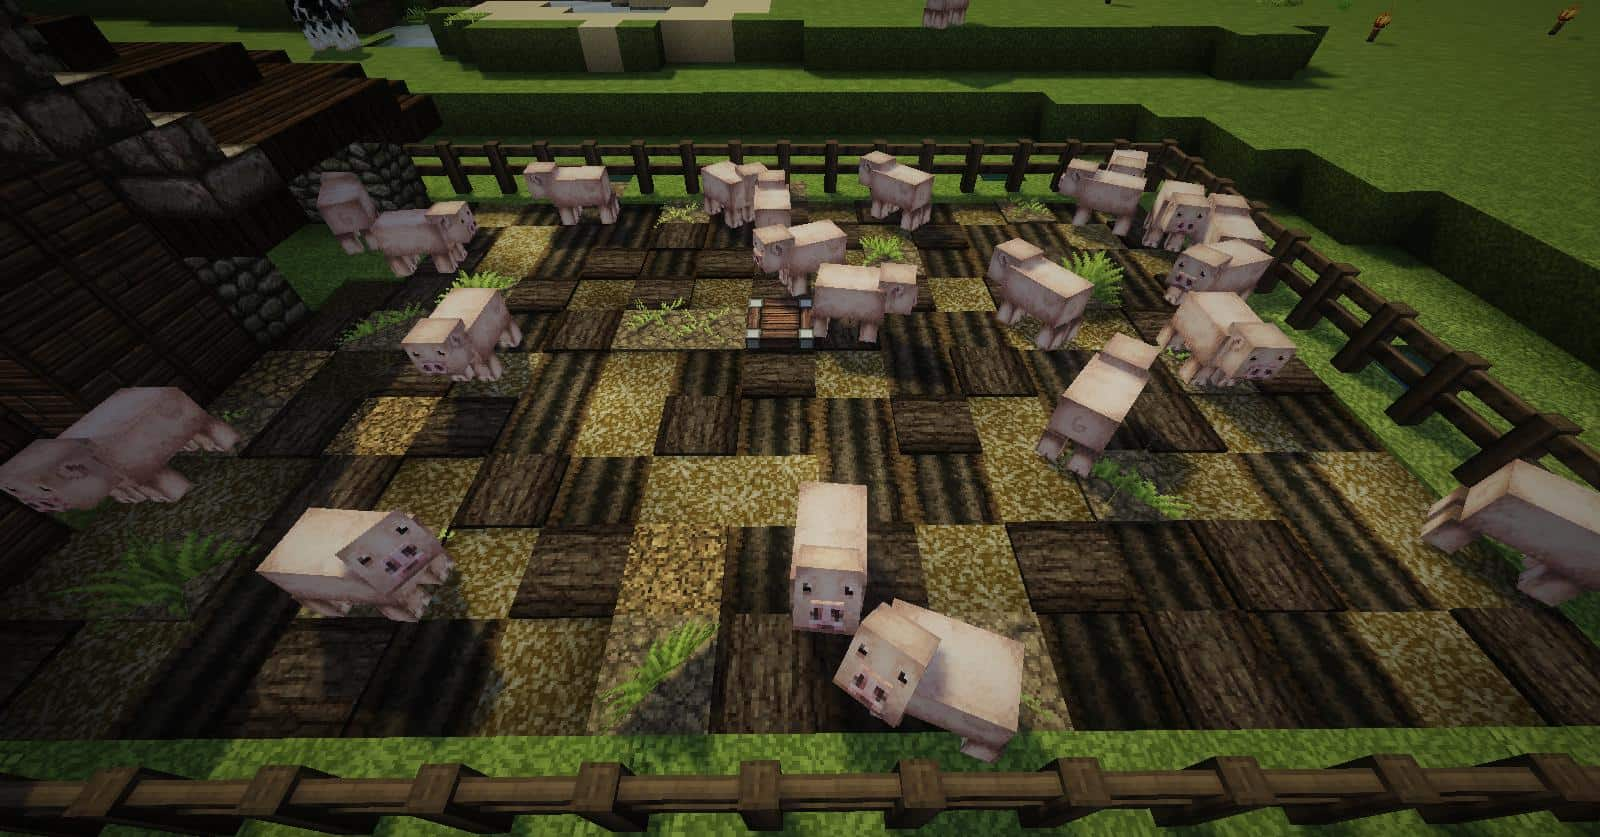 Built with John Smith textures in mind muddy pig pen detail minecraft ideas farm harvest animals cage